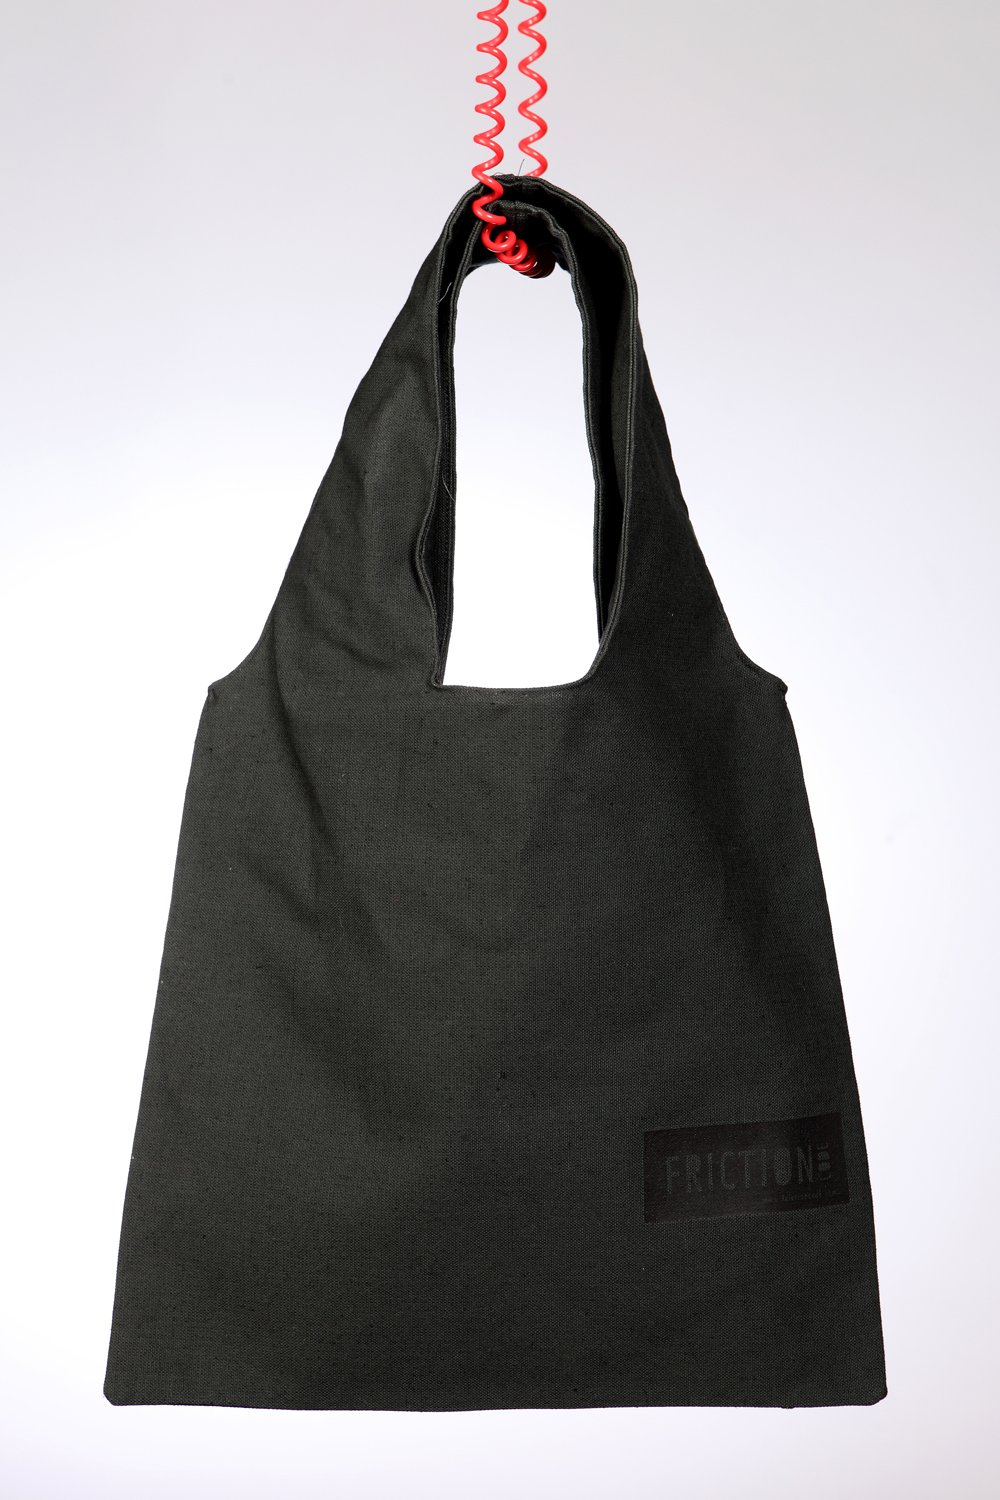 Dark green bag with black label